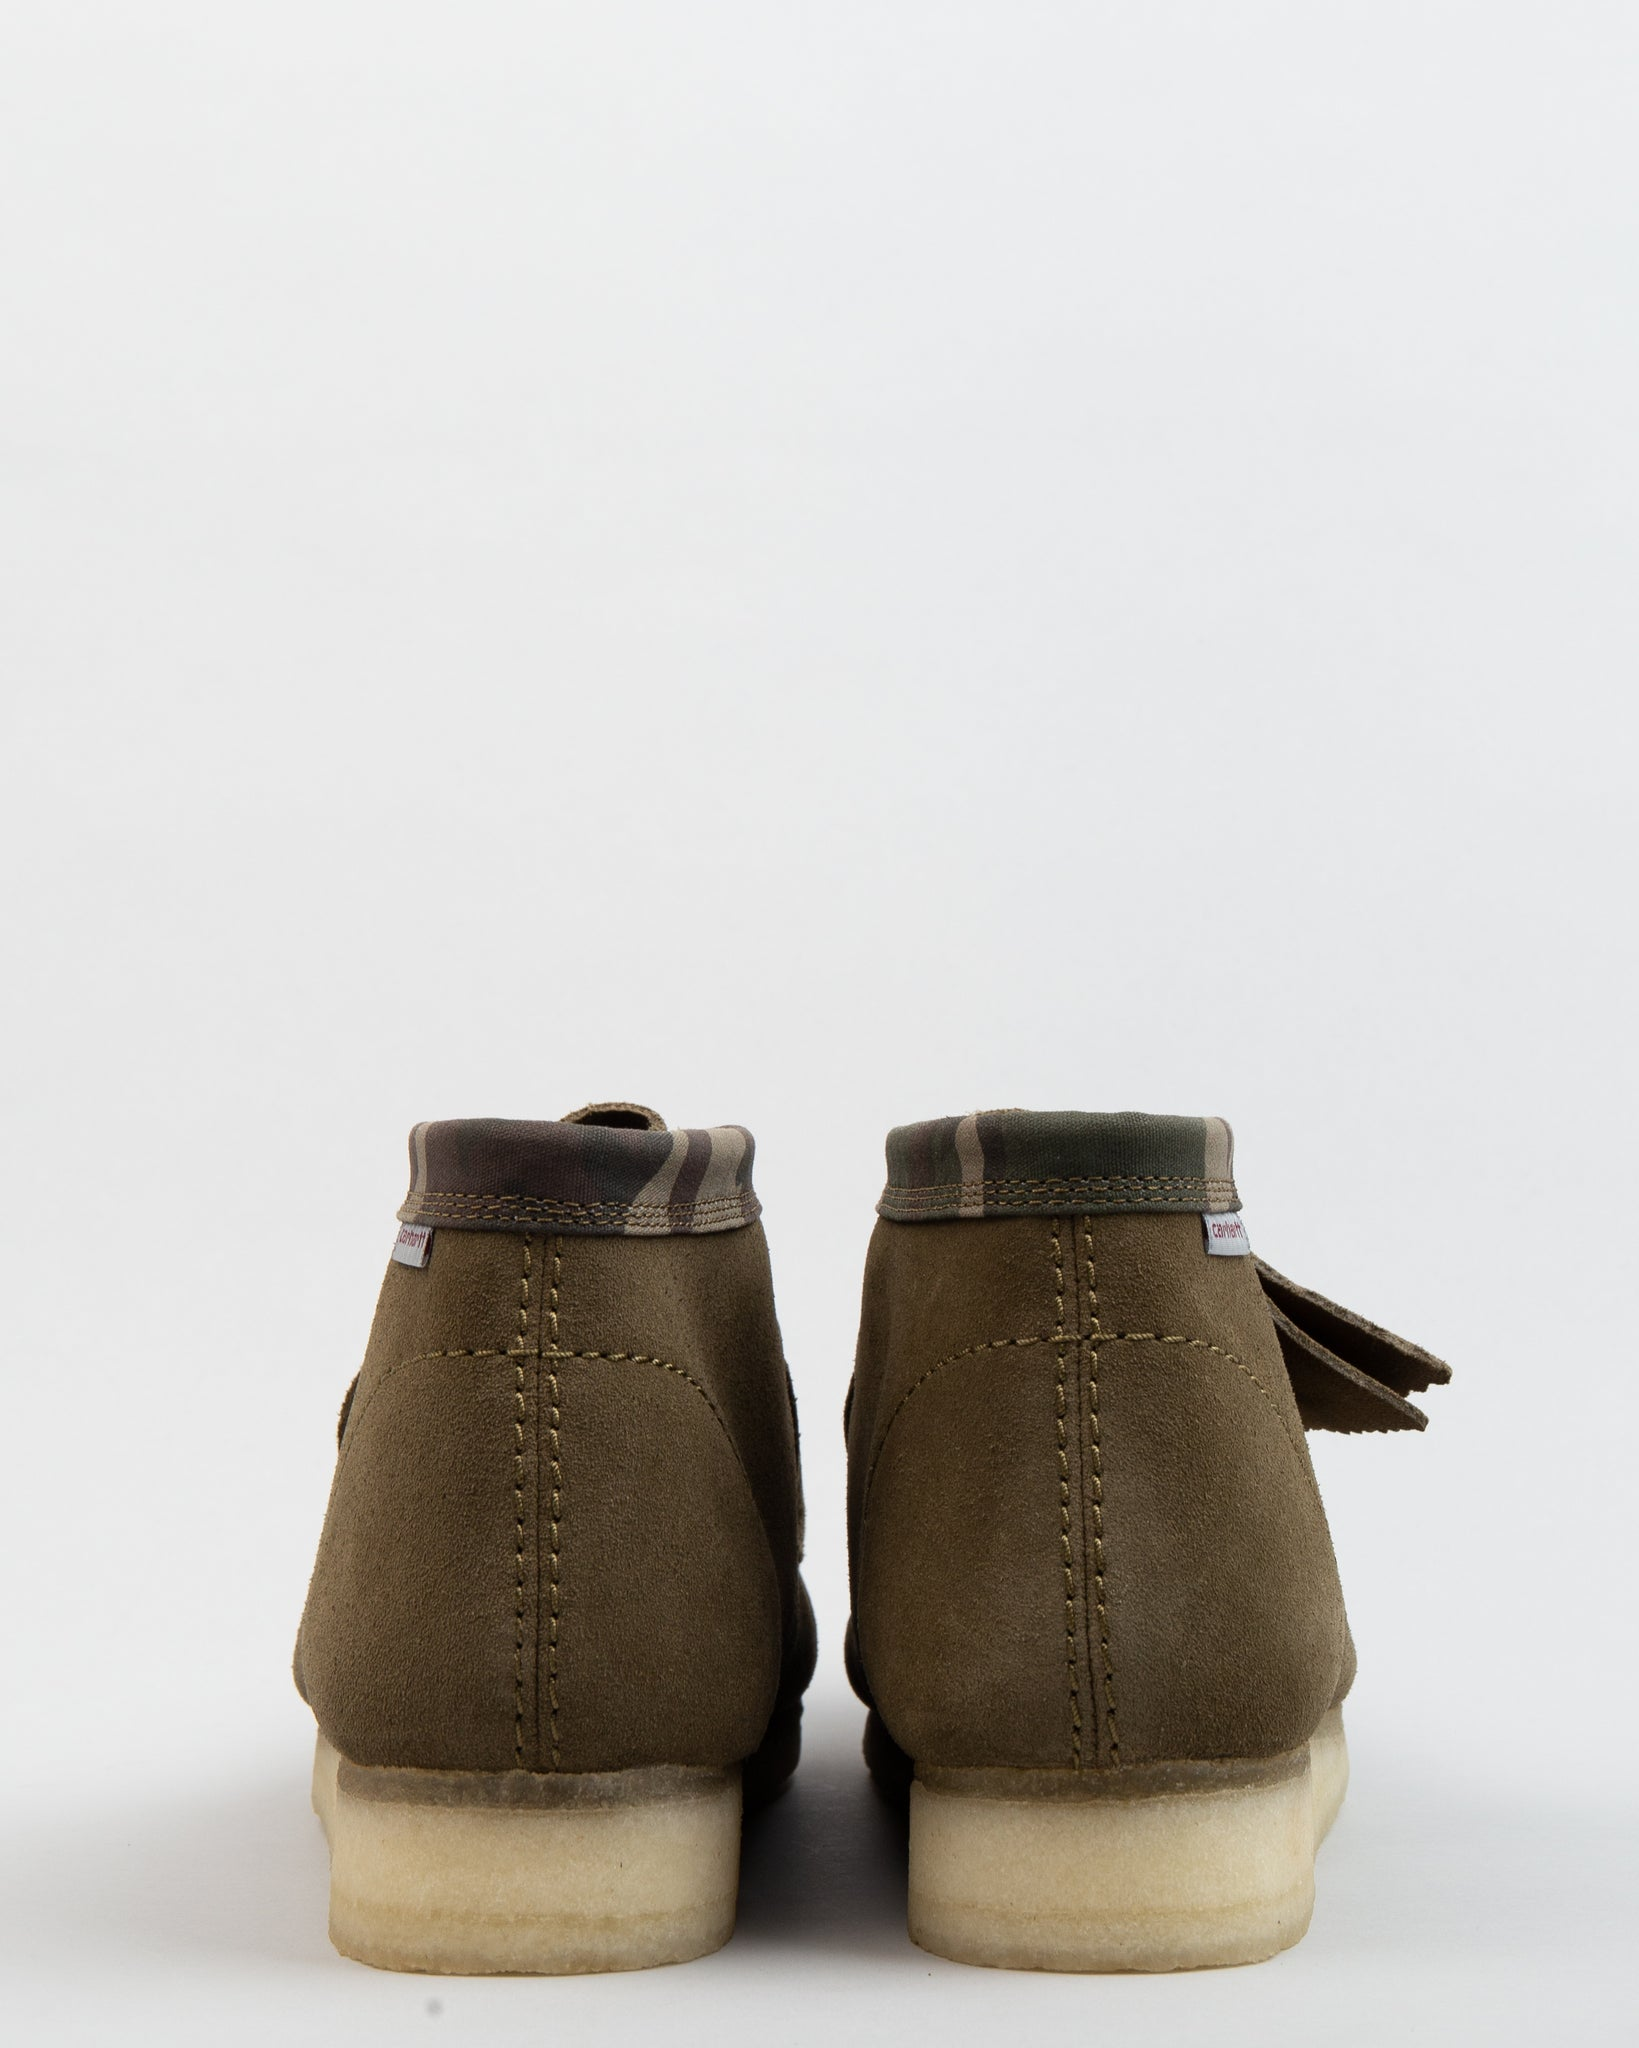 Carhartt WIP Wallabee Boot Olive Camouflage